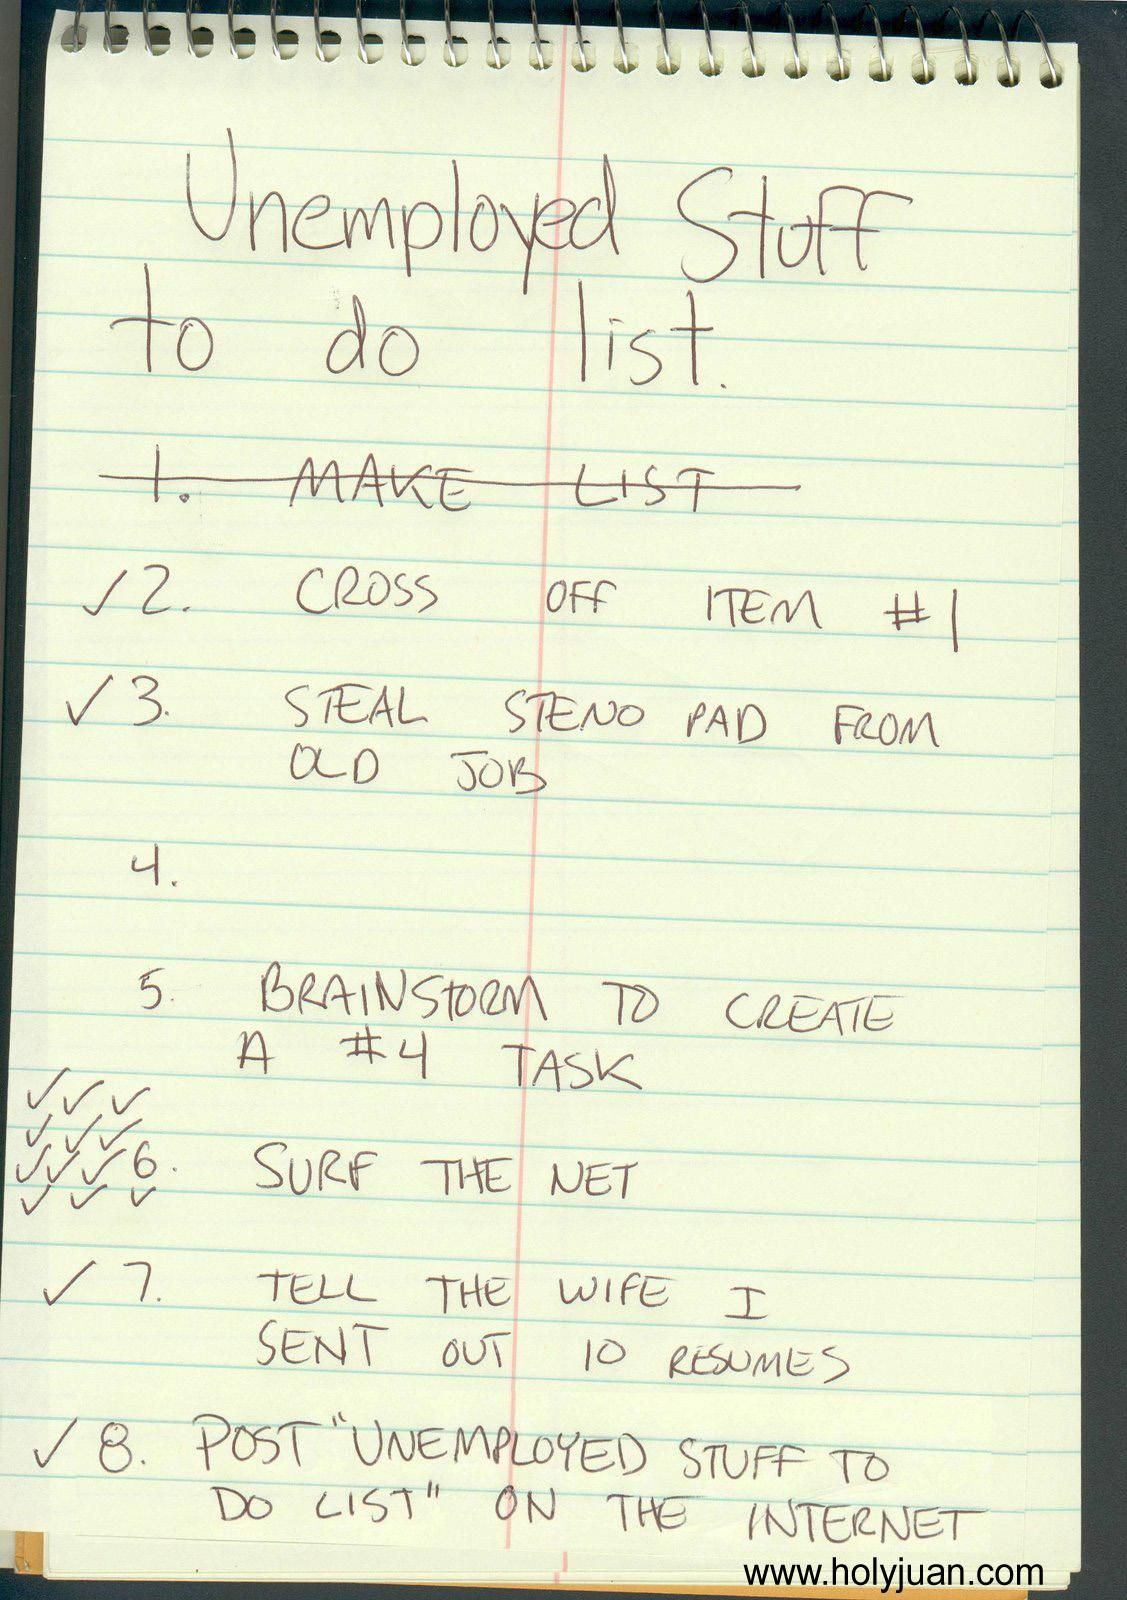 Unemployed stuff to do list